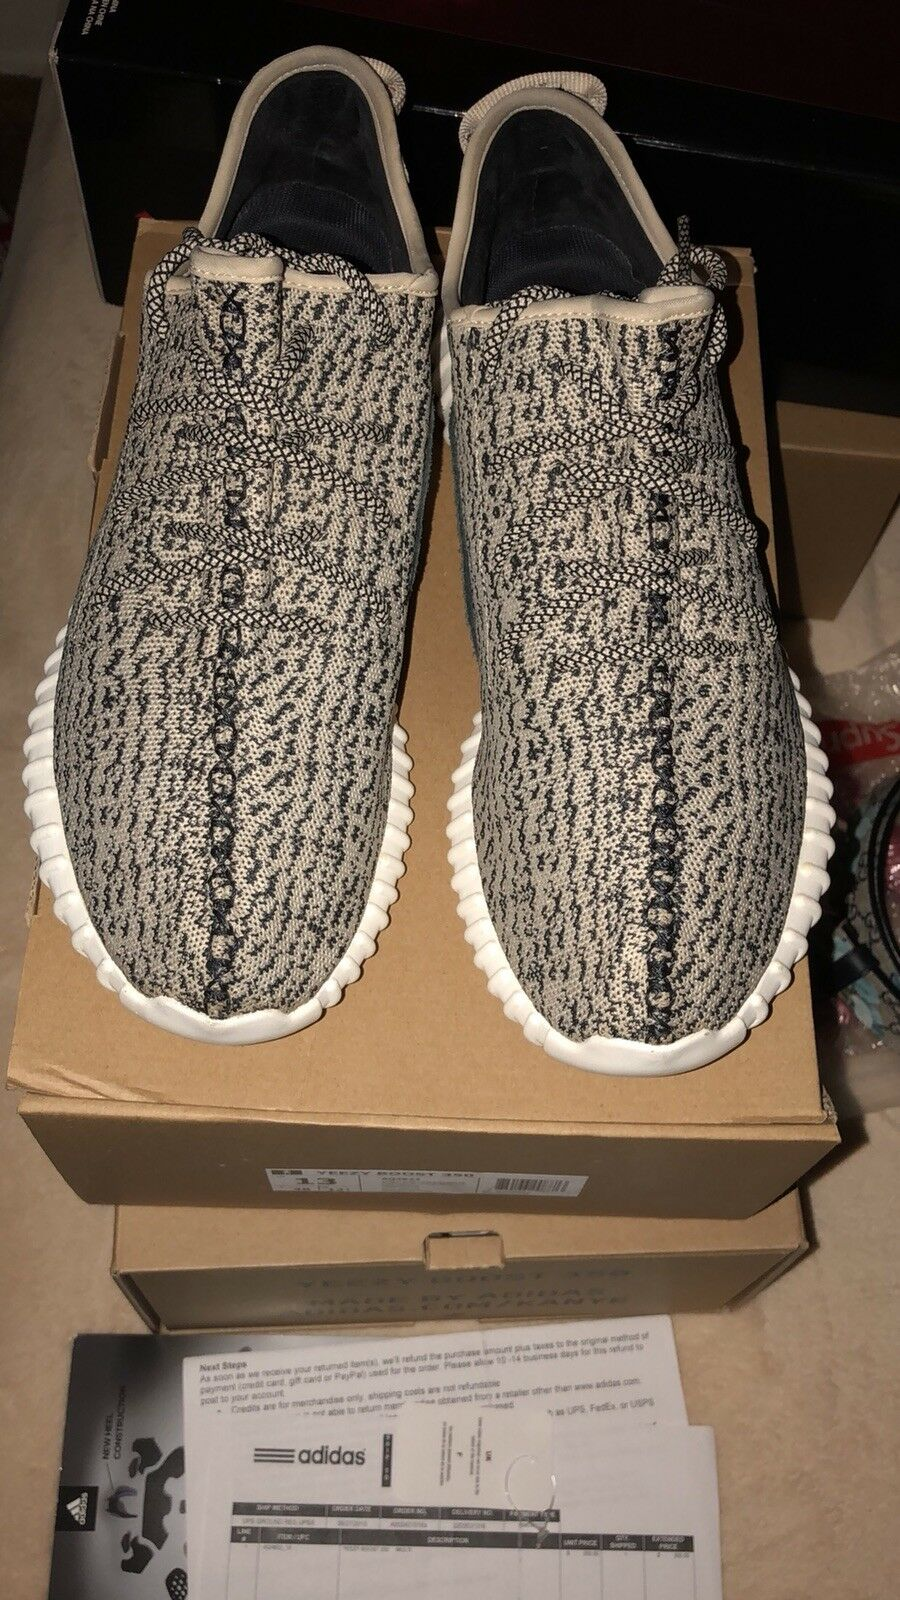 Adidas yeezy boost 350 turtle dove size 13 100% authentic yeezy boost